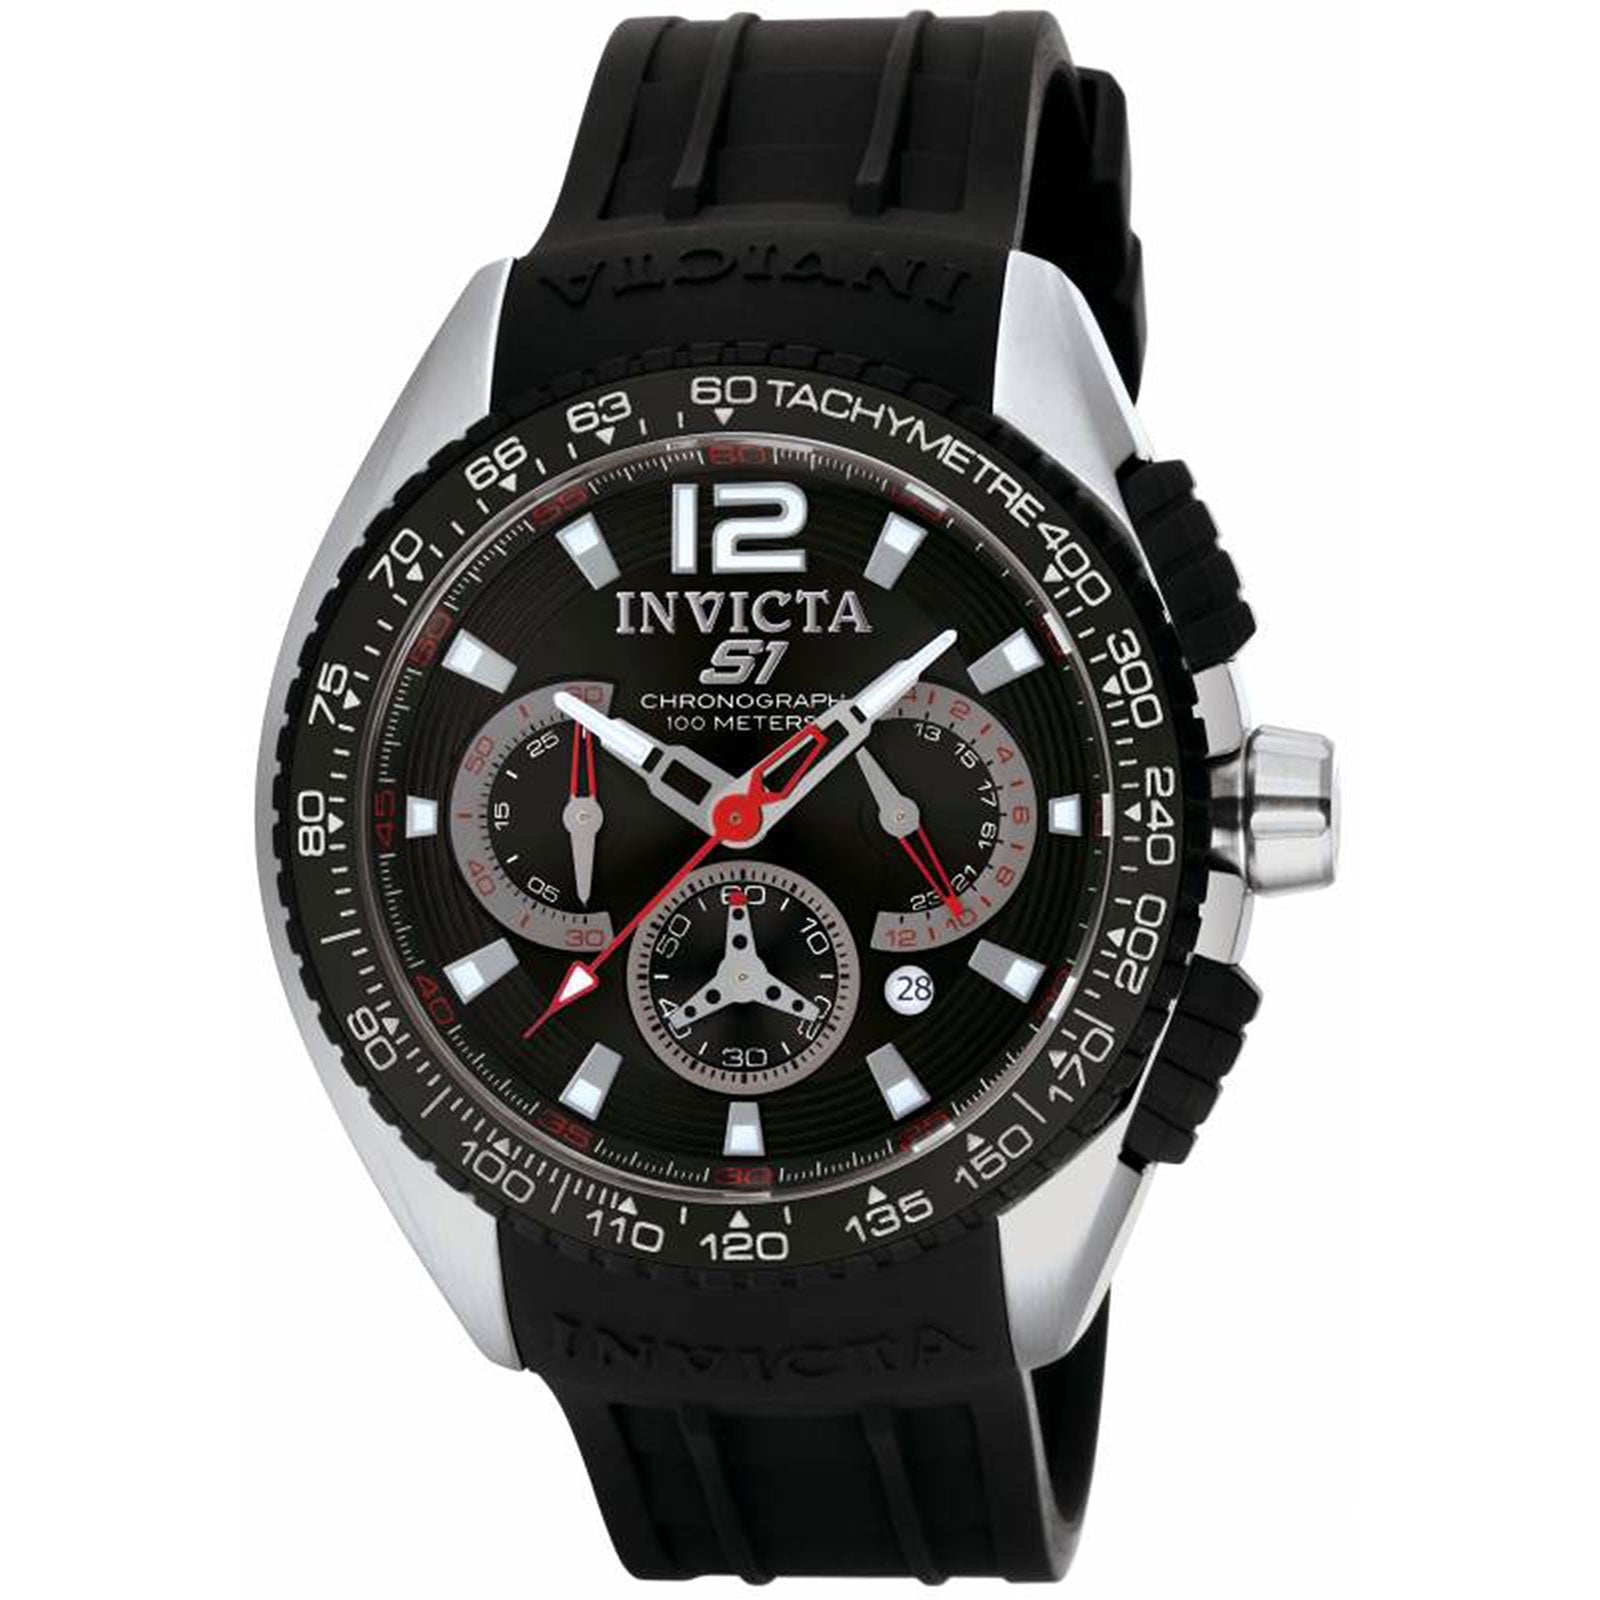 Invicta 1453 Men's S1 Racing Black Dial Chronograph Watch